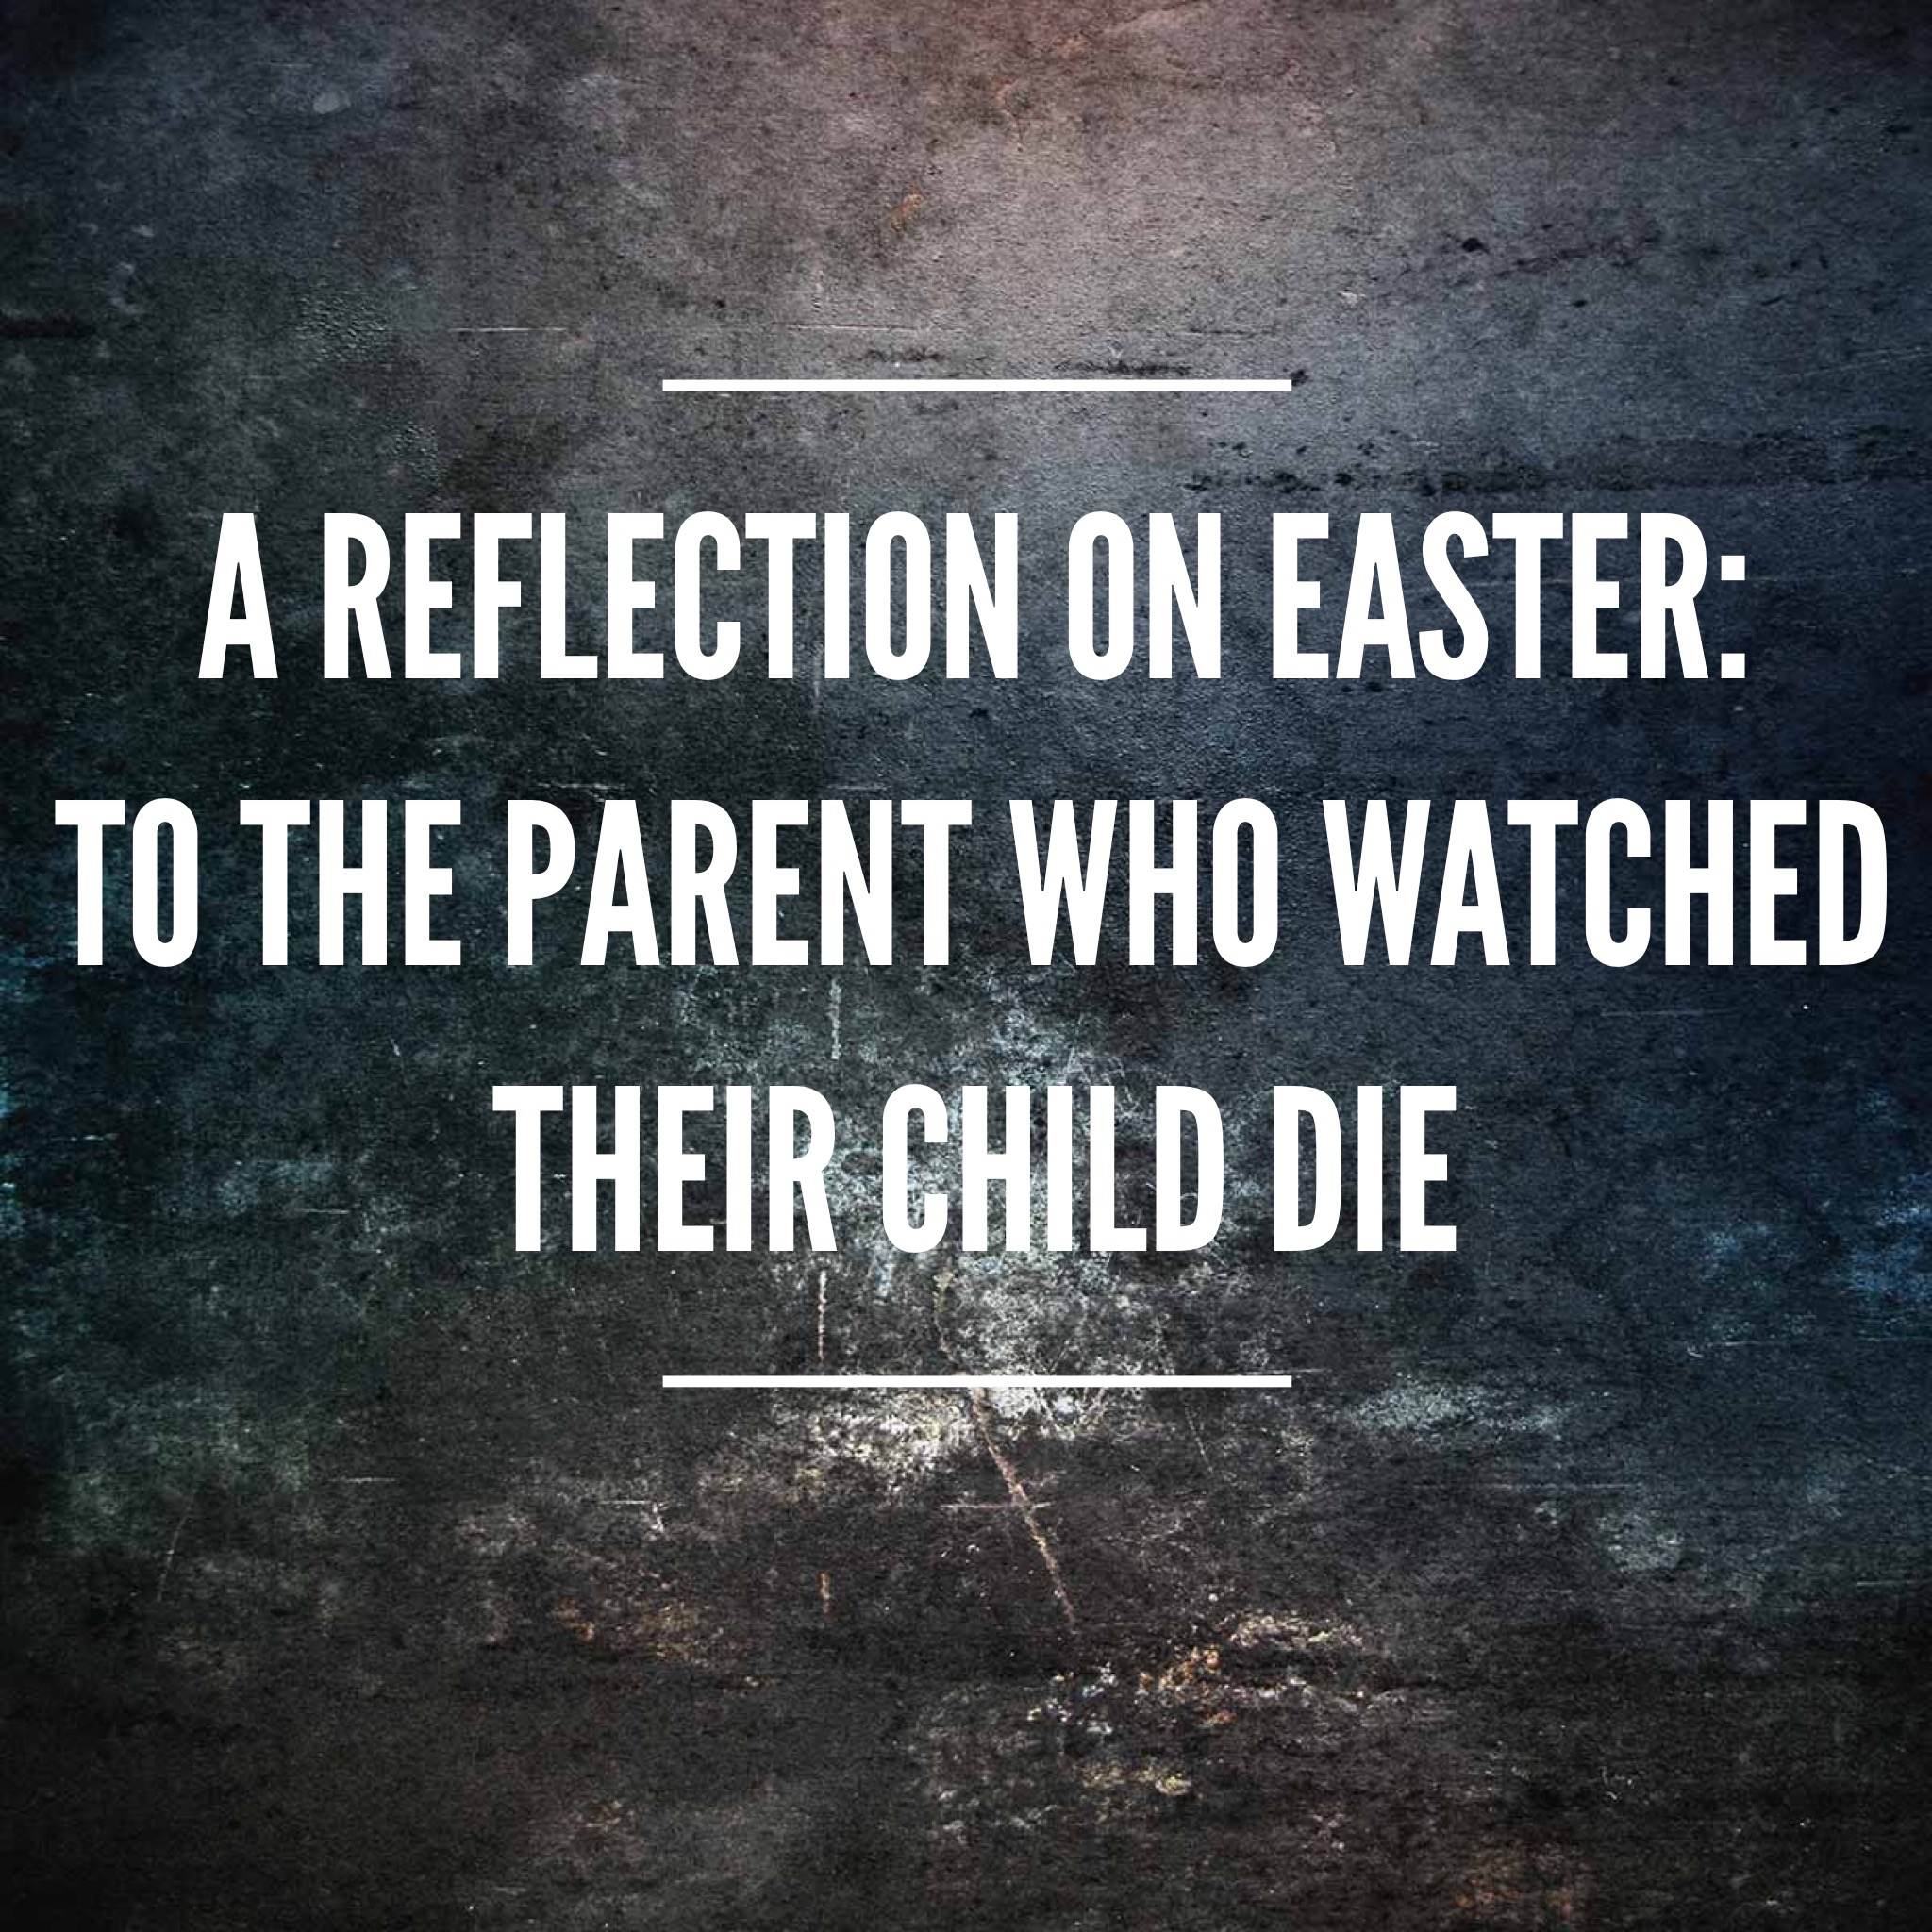 A reflection on Easter: To the parent who watched their child die